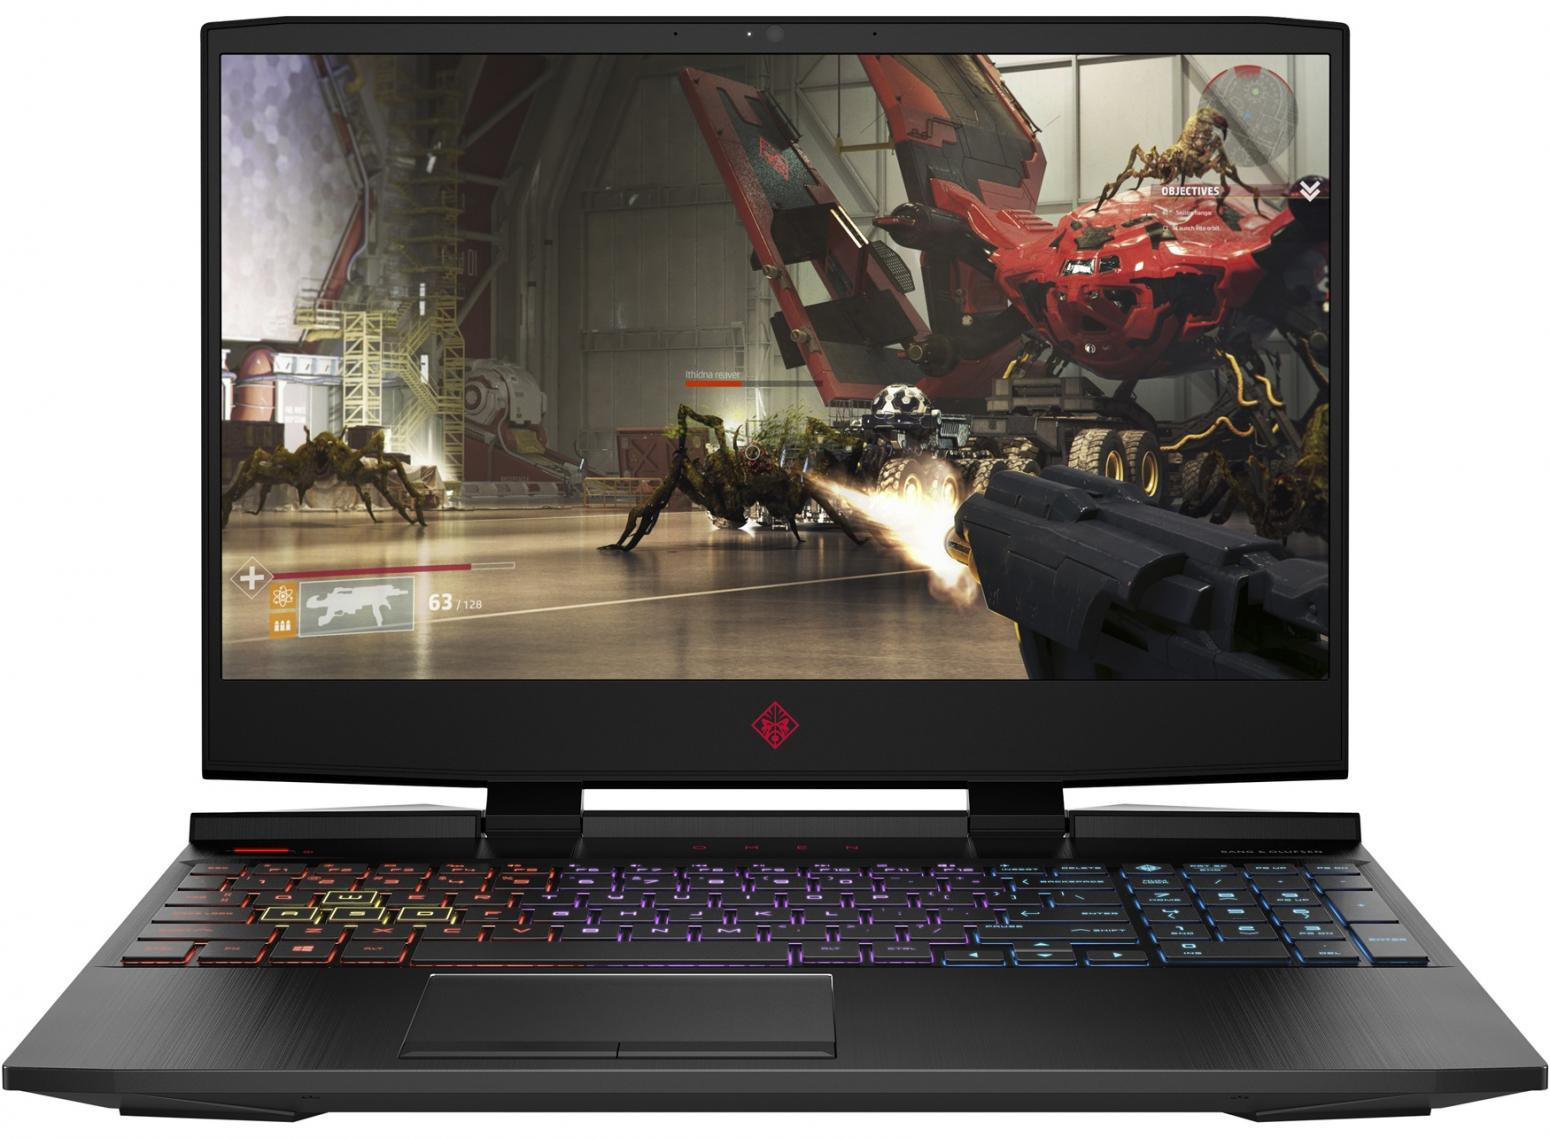 Image du PC portable HP Omen 15-dc0014nf - IPS 144 Hz G-Sync, GTX 1060